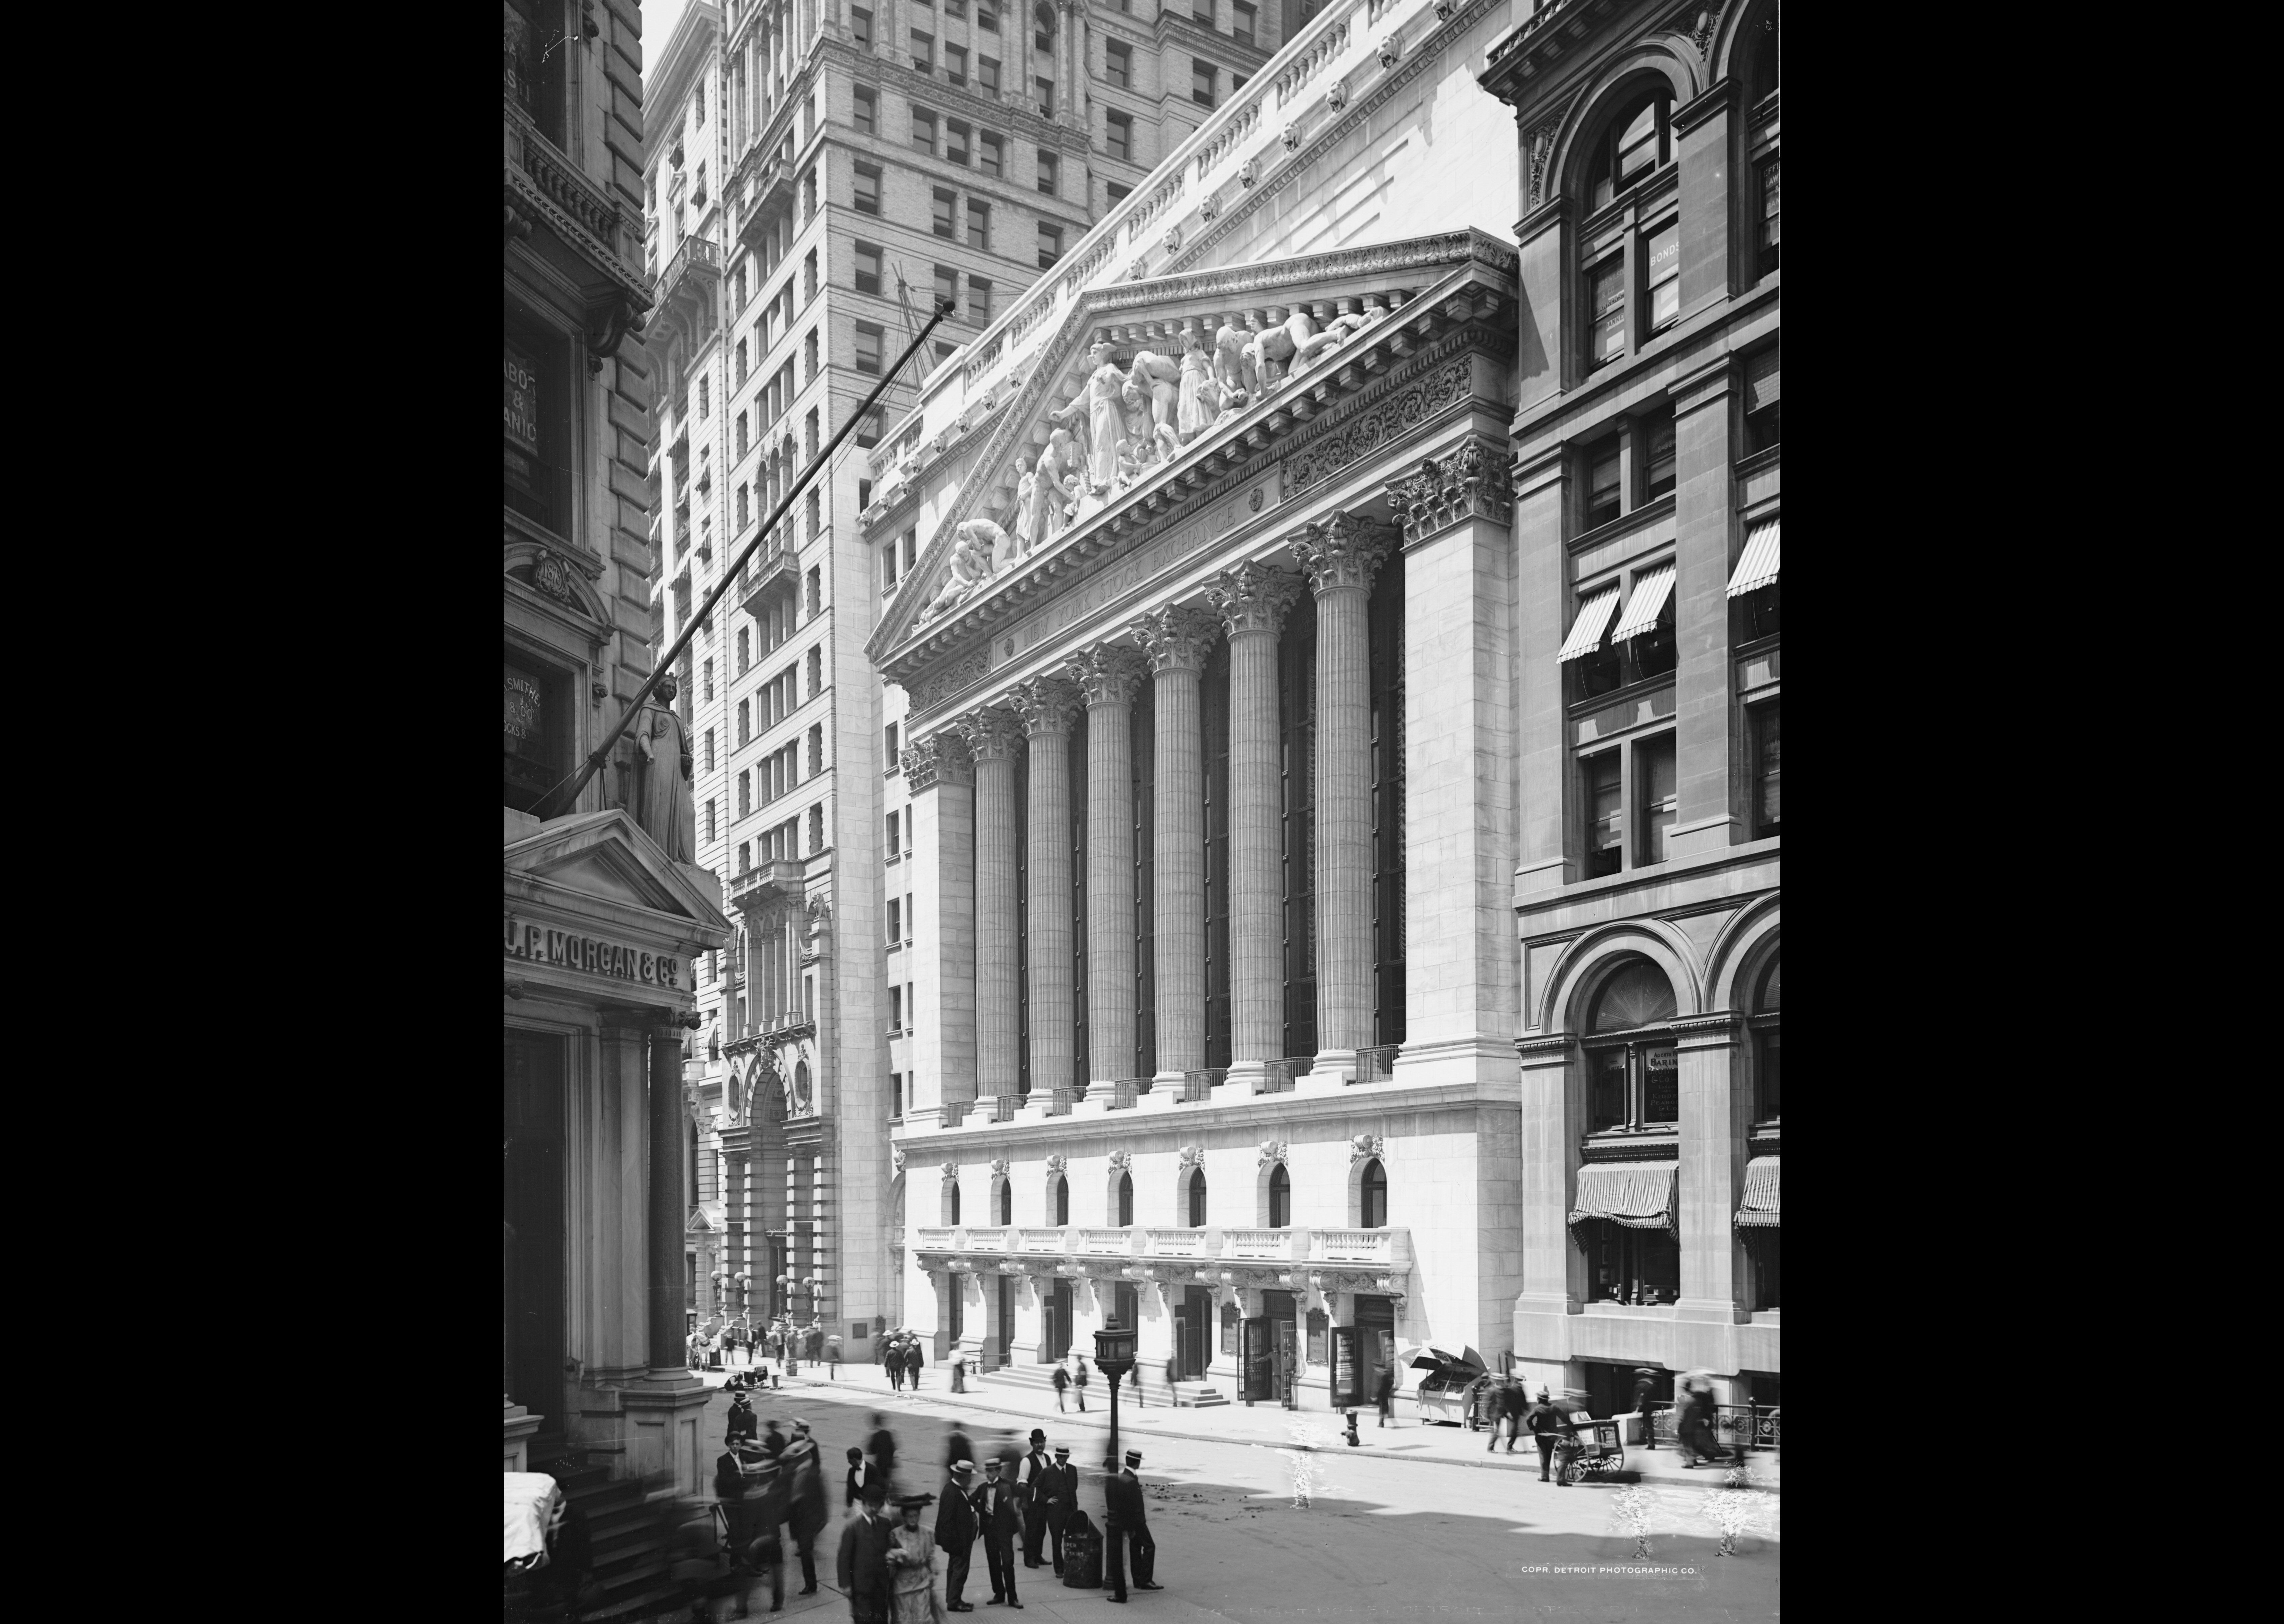 Photograph from 1904 of the New York Stock Exchange building